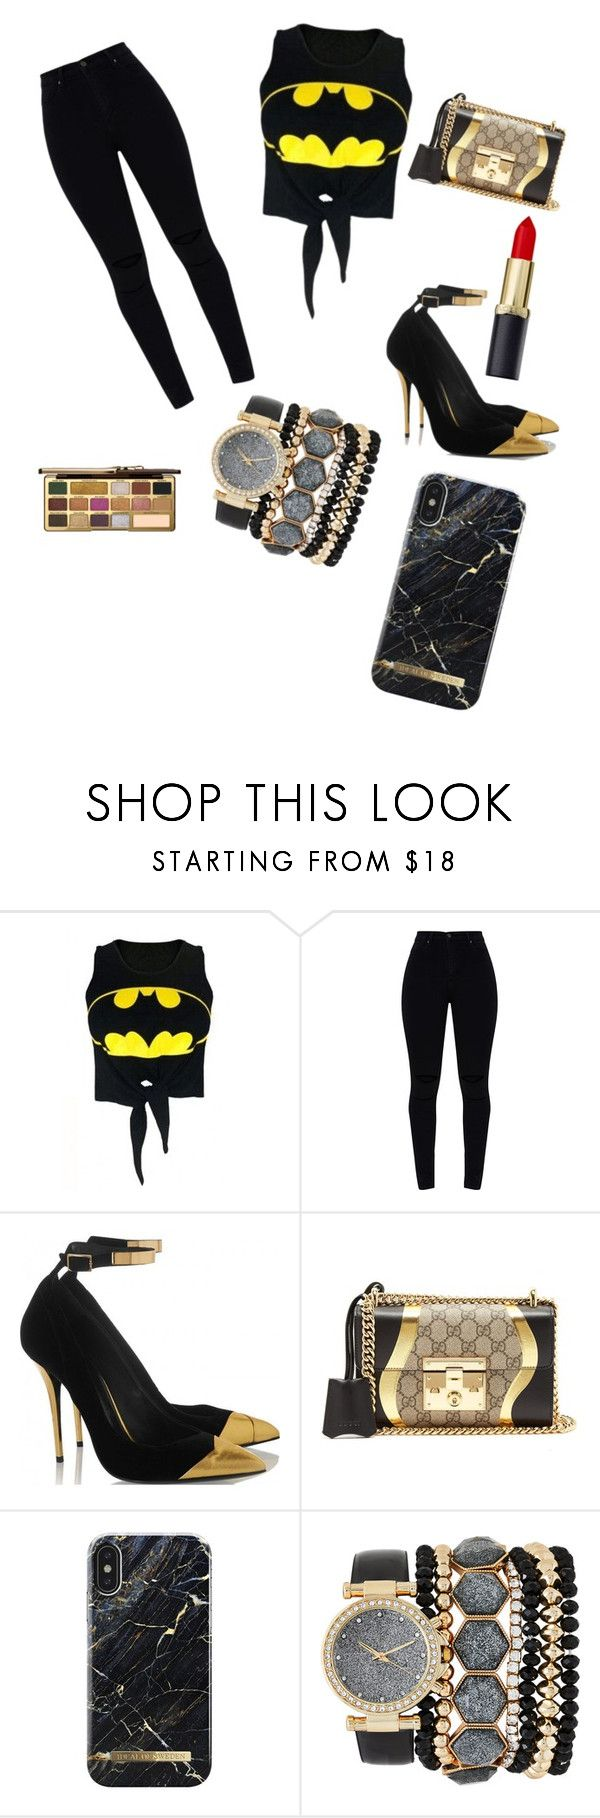 """Batman Outfit"" by autumnyork30 ❤ liked on Polyvore featuring WithChic, Gucci, Jessica Carlyle and Too Faced Cosmetics"